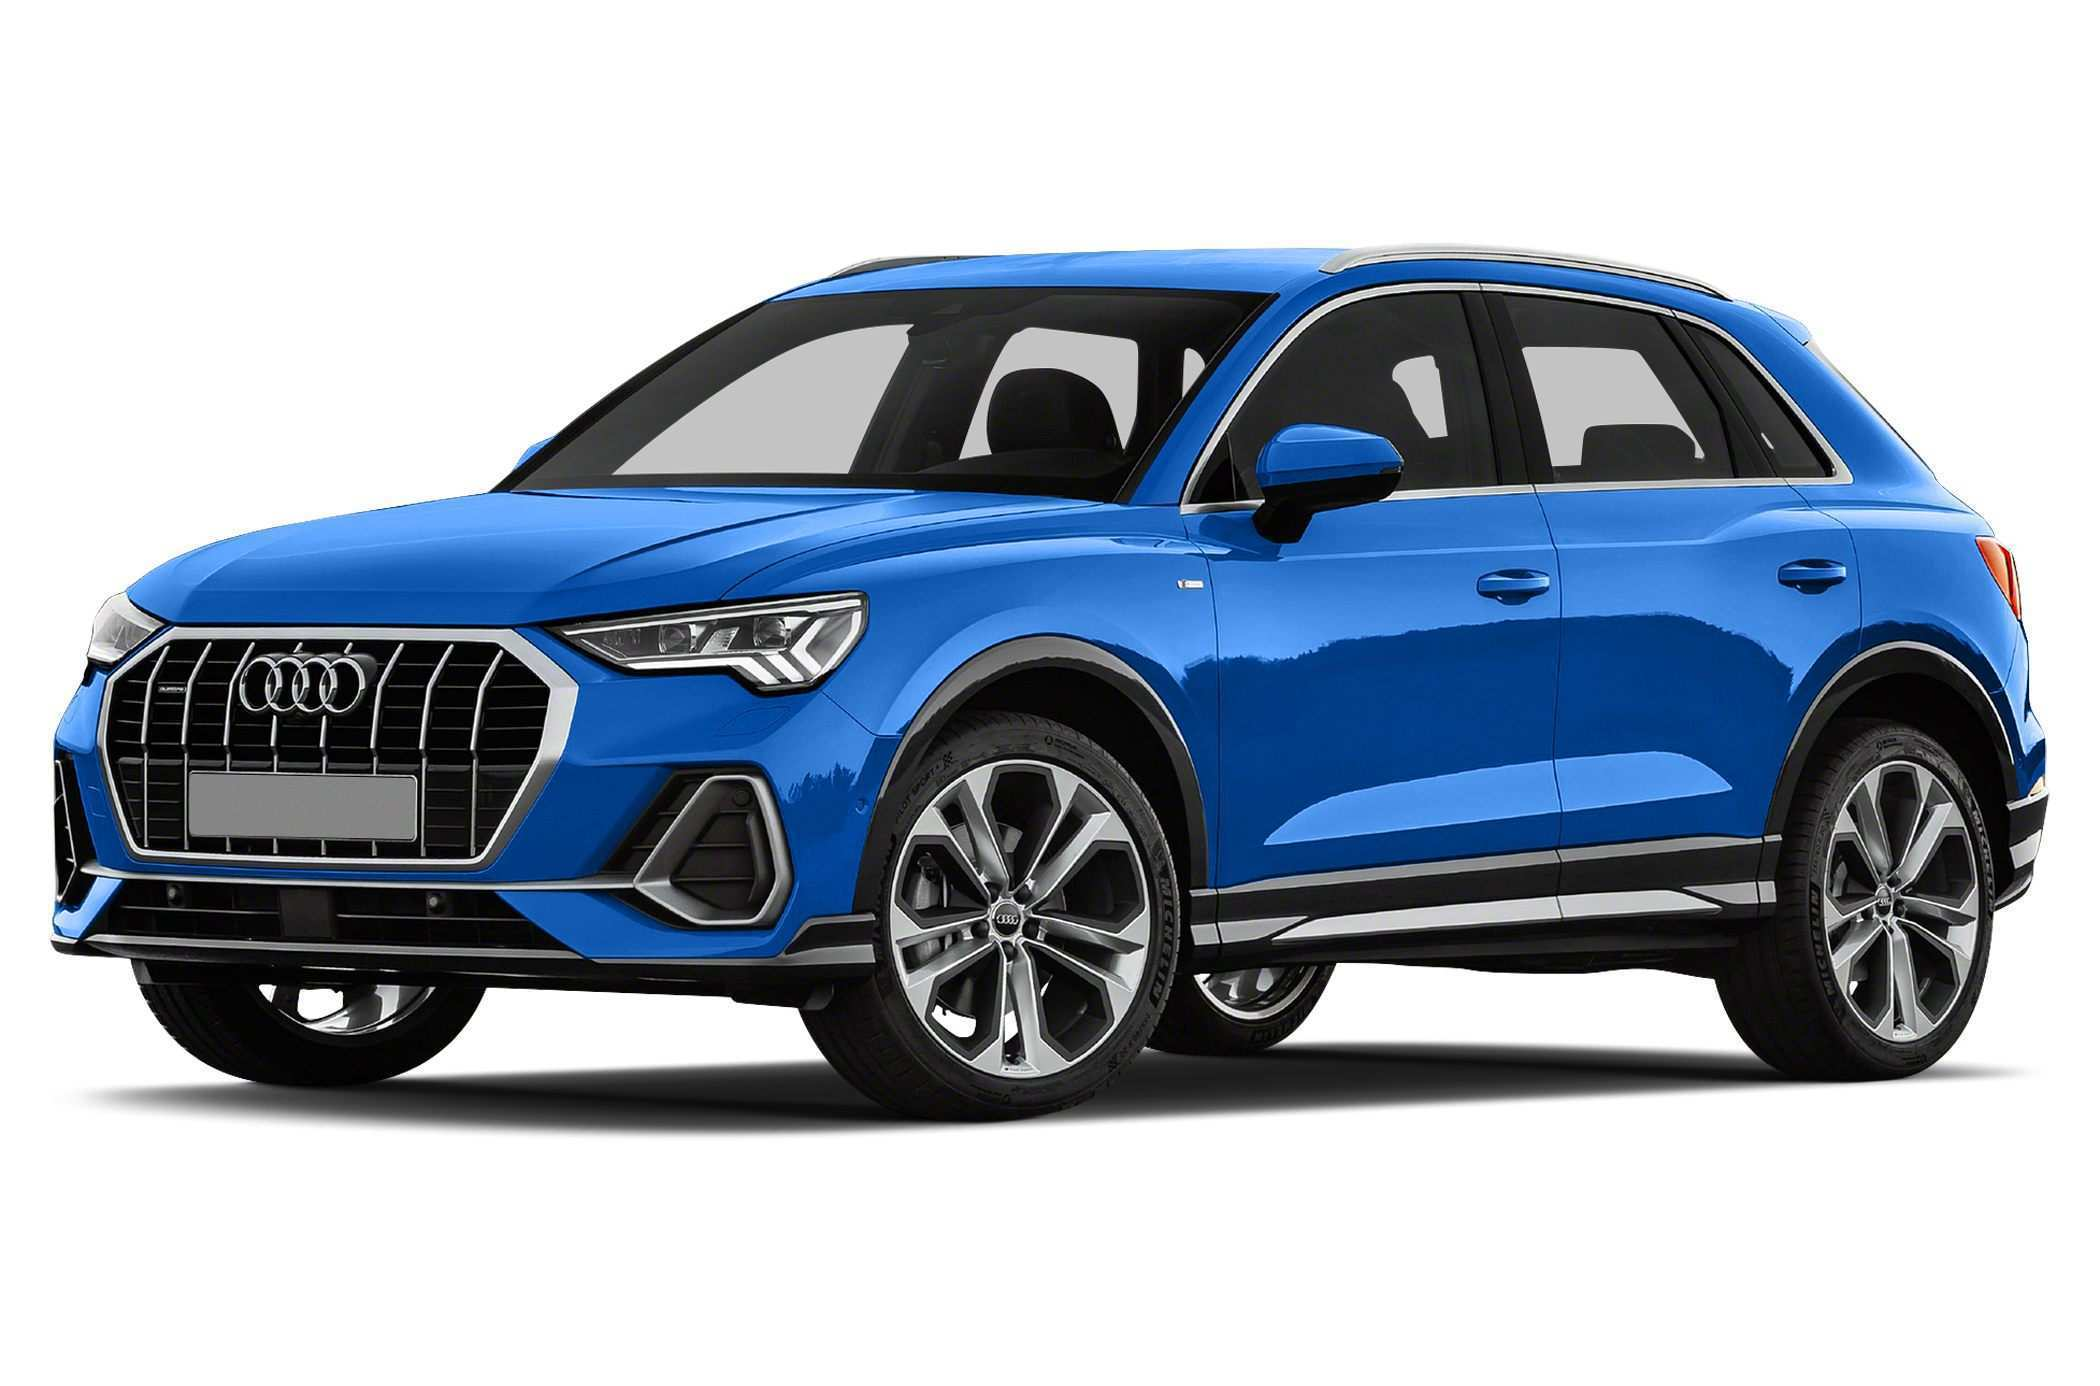 45 Best 2019 Audi Q3 Dimensions Configurations